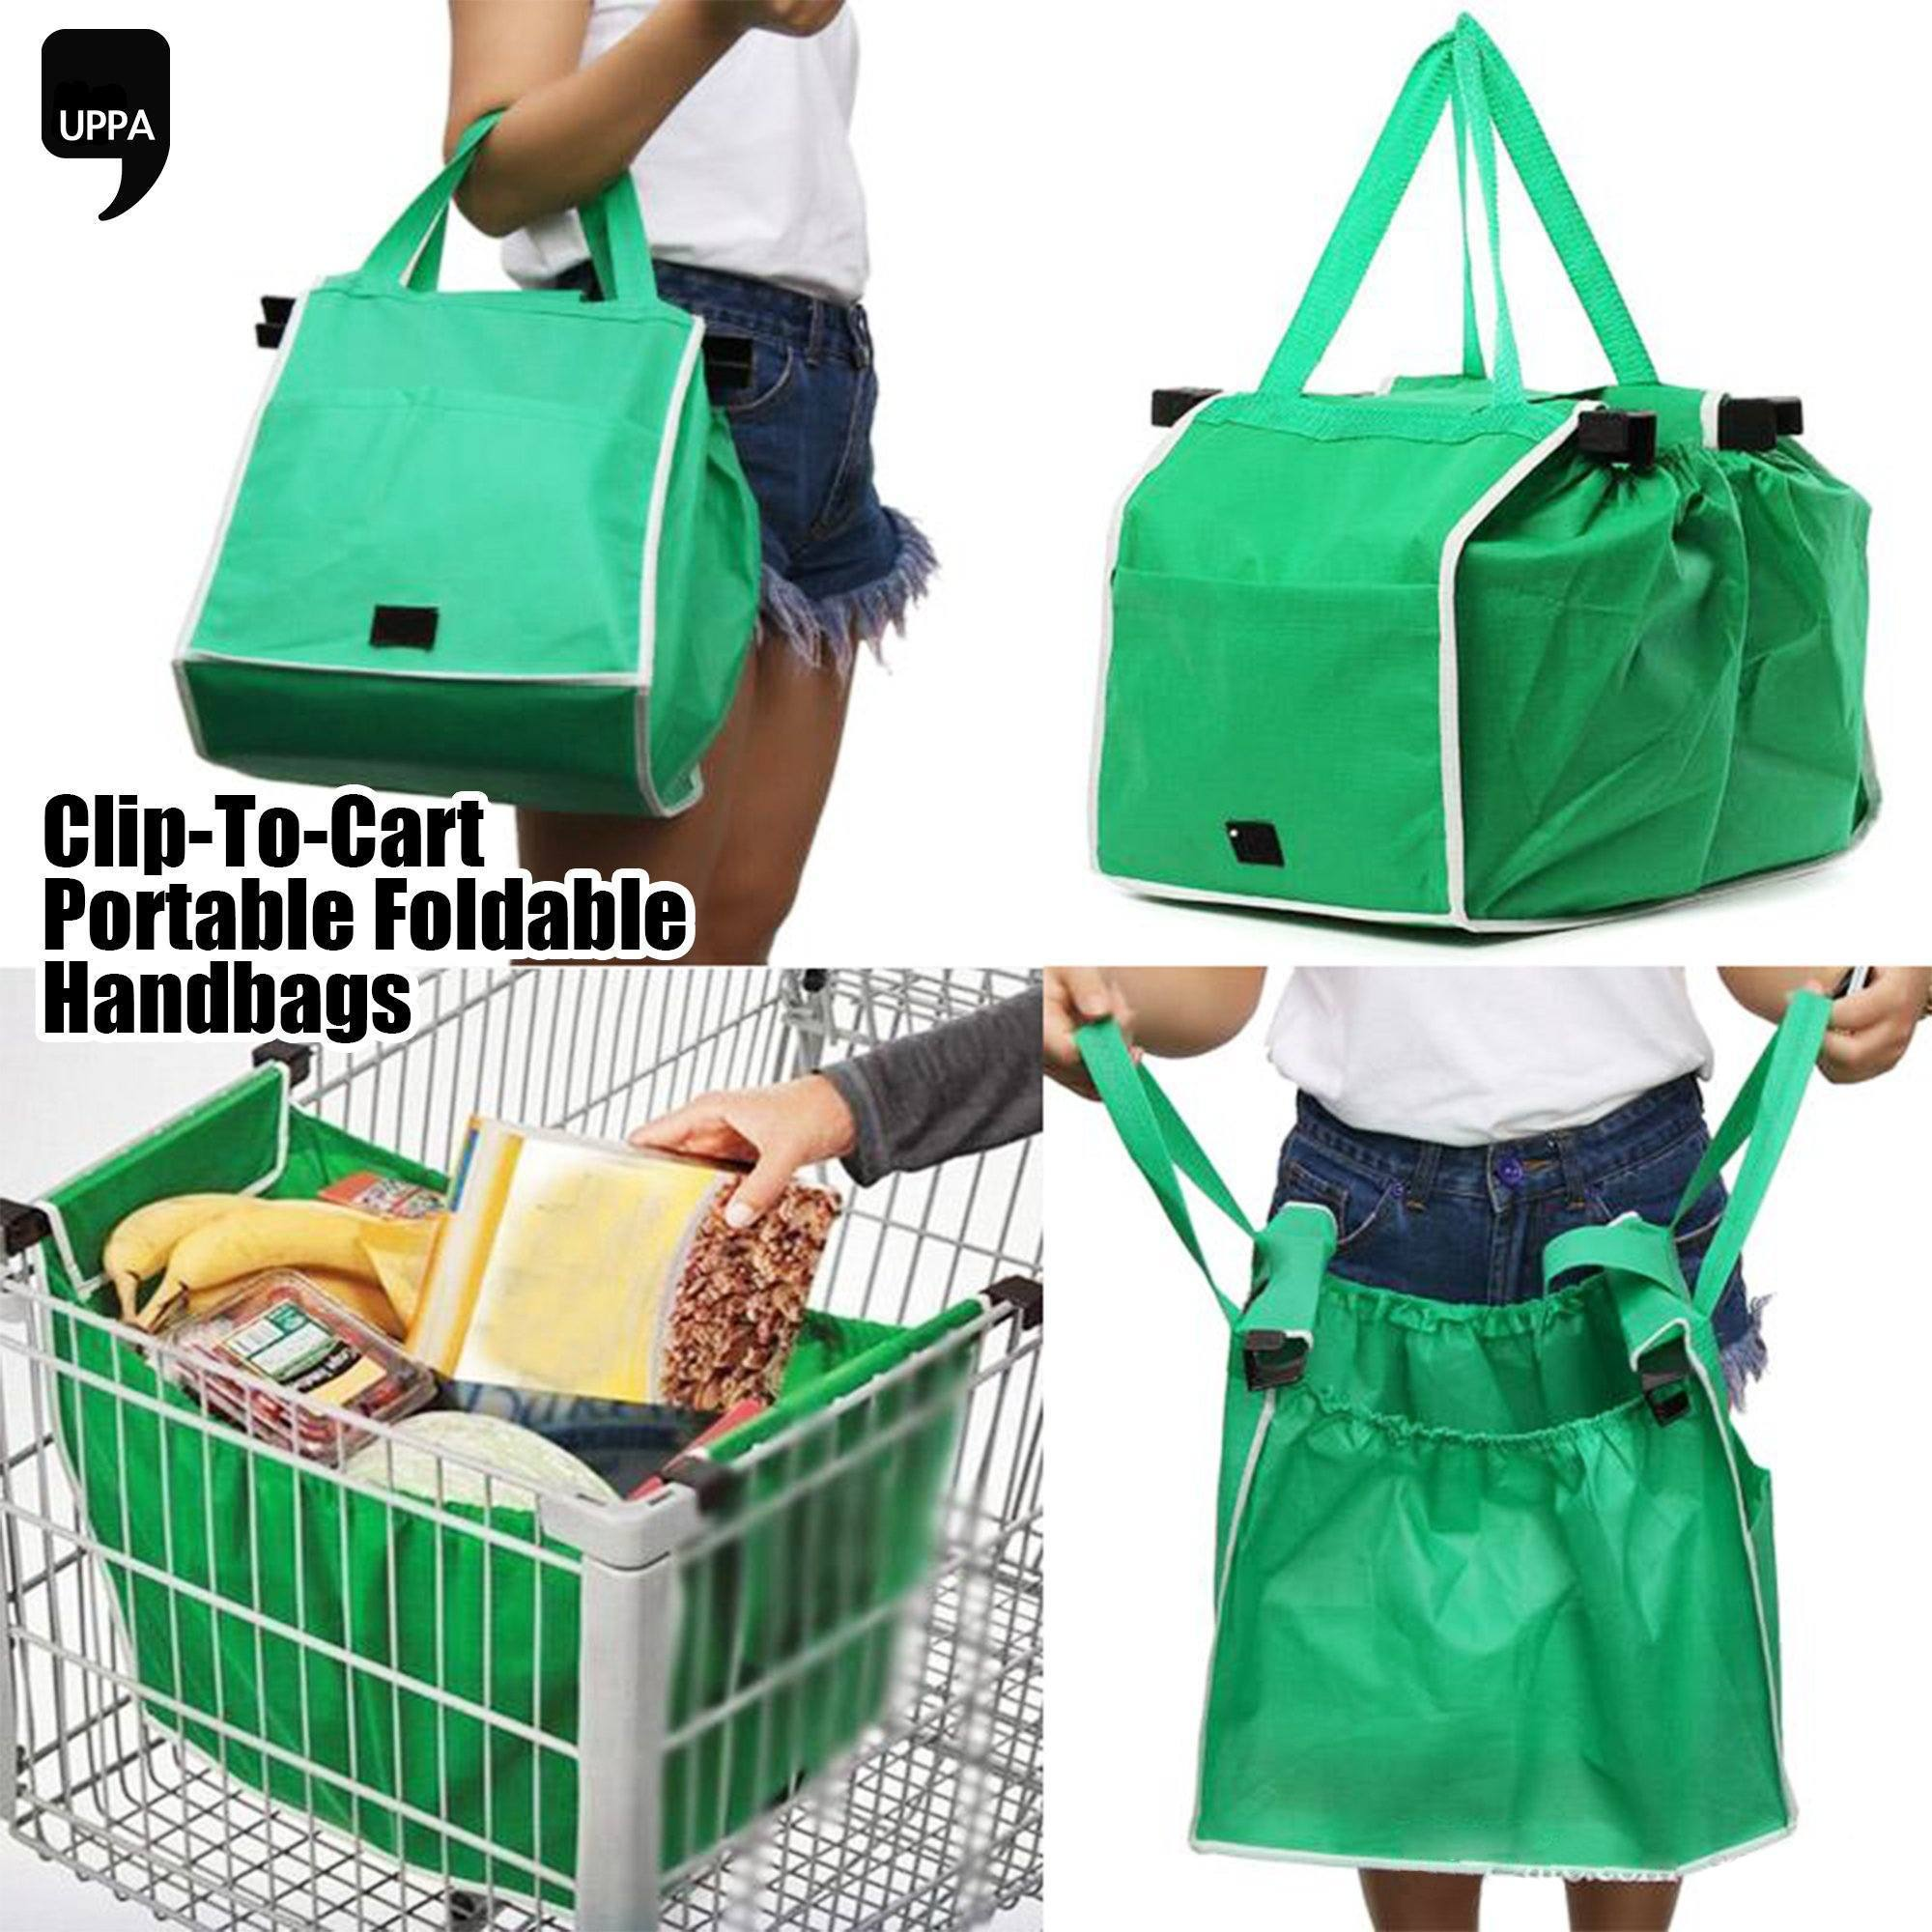 Clip-To-Cart Portable Foldable Handbags